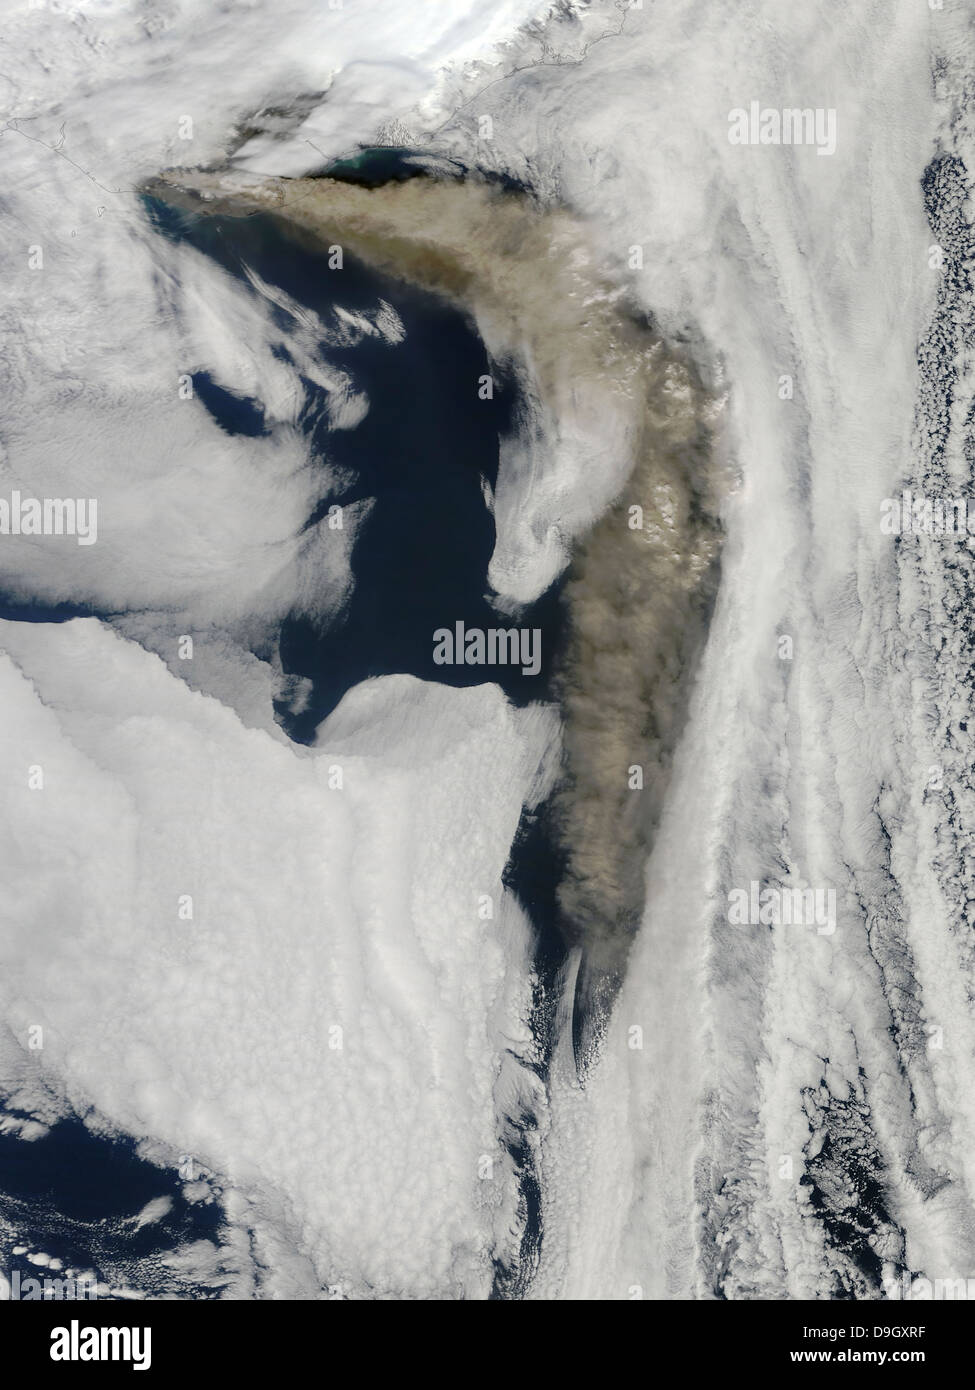 Satellite view of a thick plume of ash rising from the Eyjafjallajokull volcano. - Stock Image